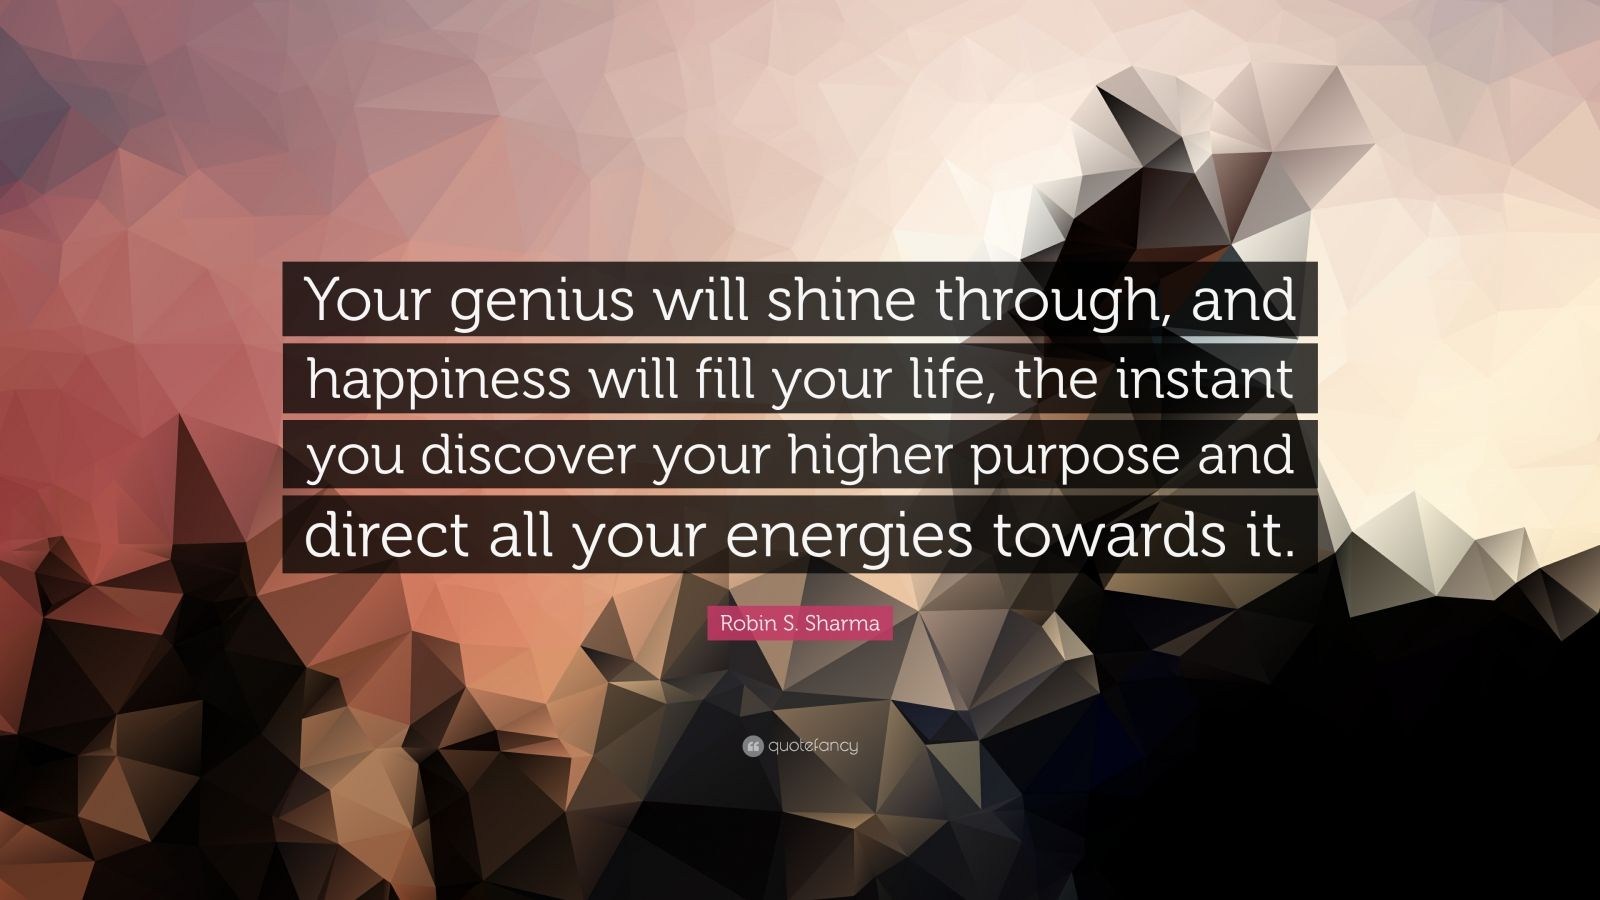 """Robin S. Sharma Quote: """"Your genius will shine through, and happiness will fill your life, the instant you discover your higher purpose and direct all your energies towards it."""""""